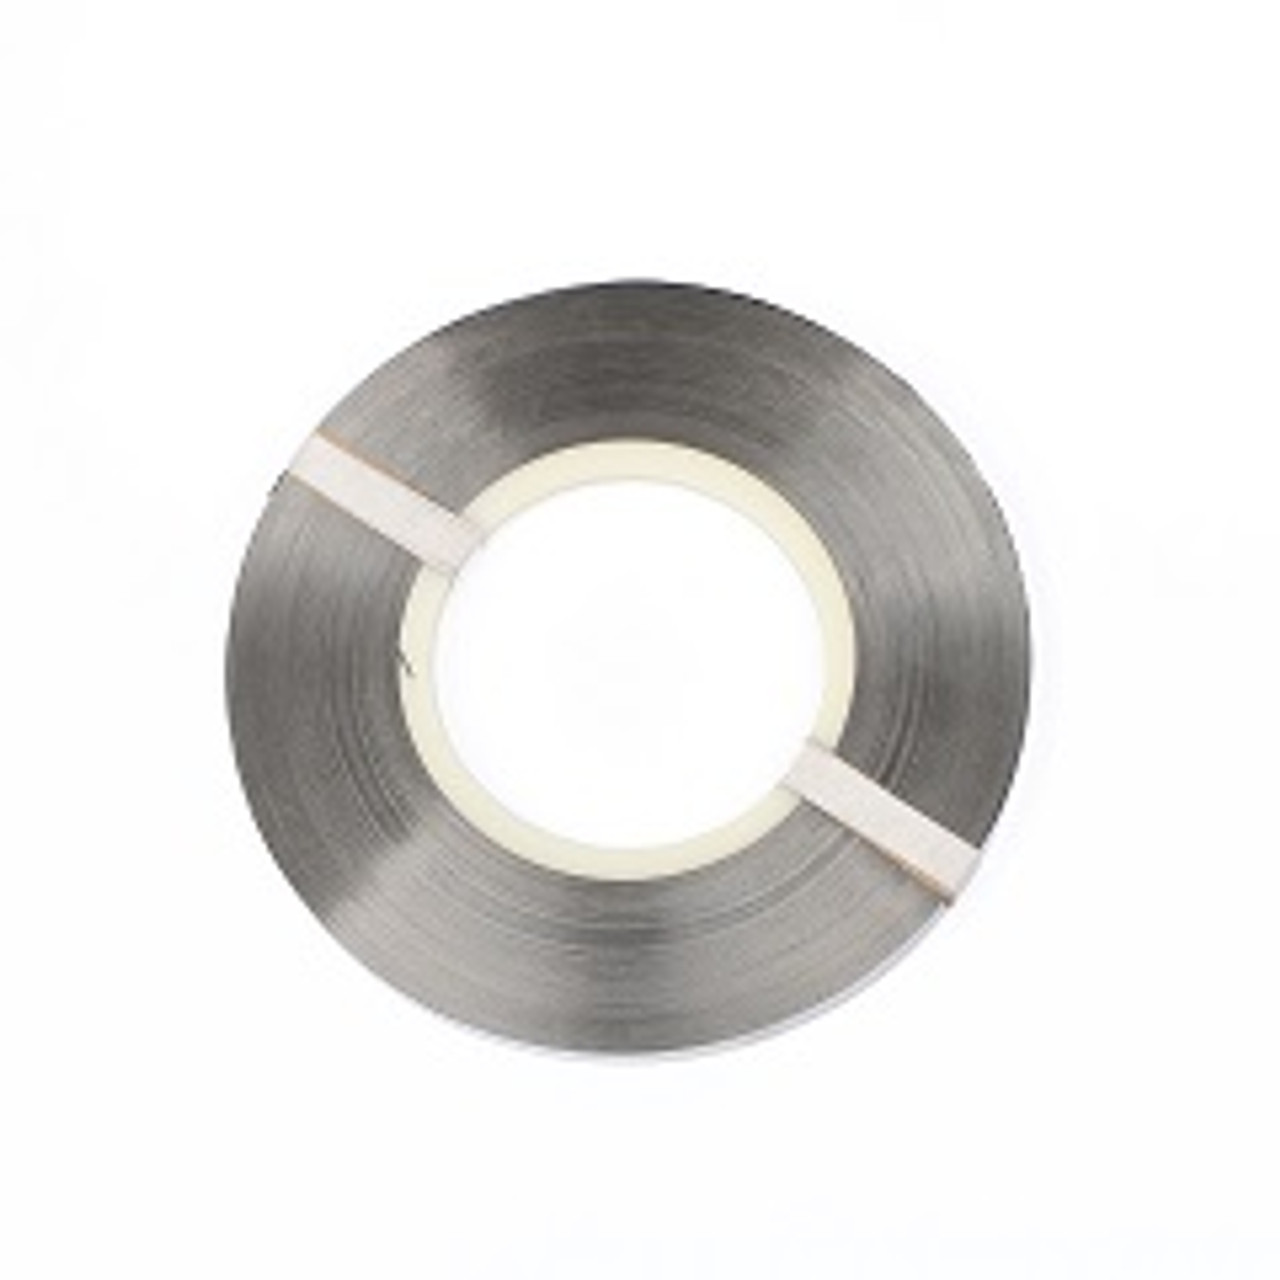 0.1x8mm 1kg(approx. 459ft) Pure Nickel Strip for High Capacity 18650 Lithium Battery Packs